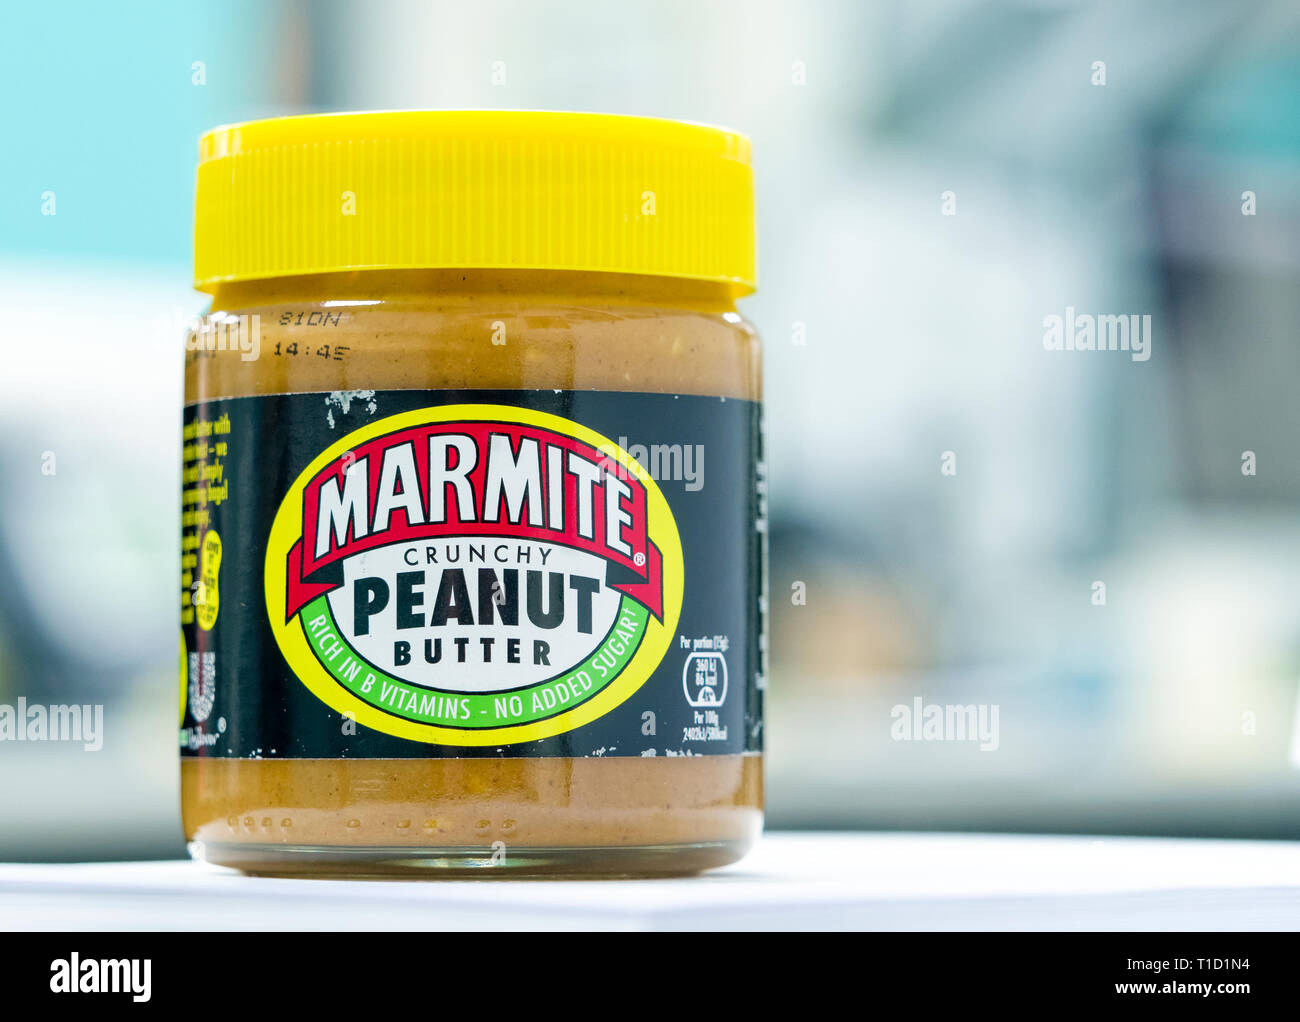 Jar of Marmite Crunchy Peanut Butter, The original Marmite is made by Unilever and first launched in 1902. - Stock Image